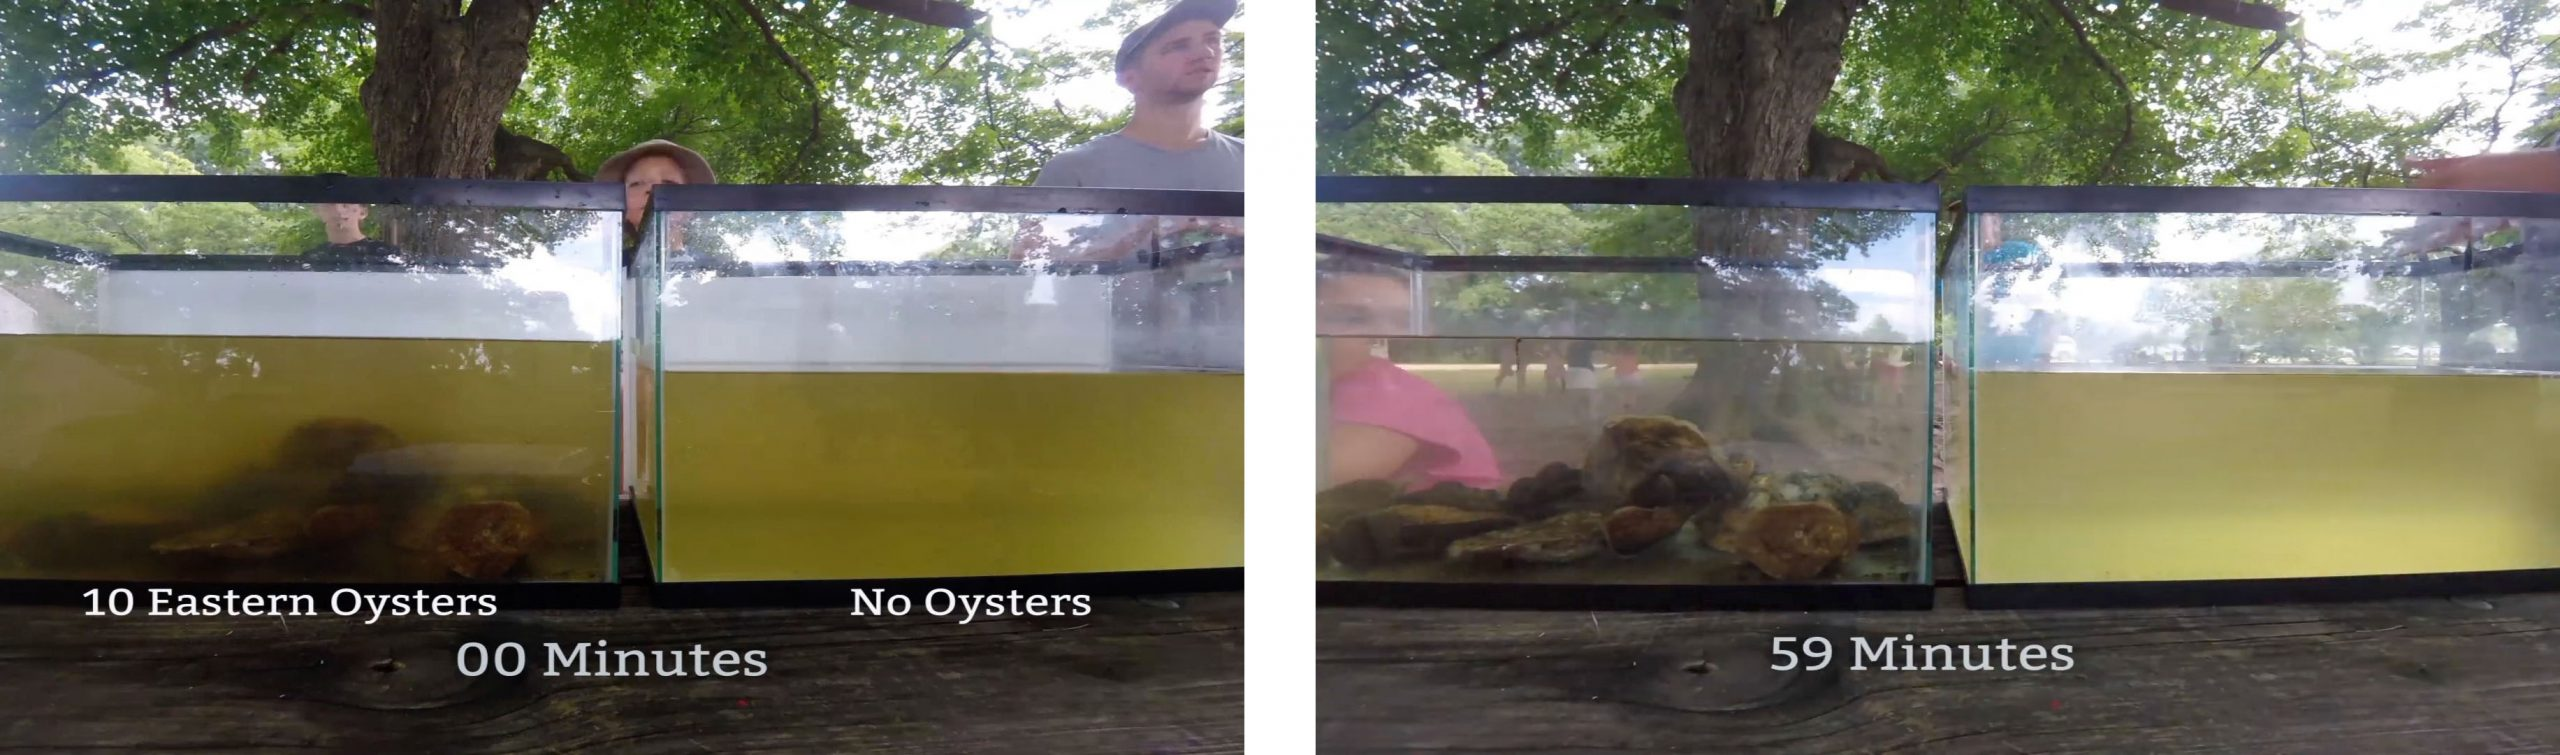 Oyster filter feeding demonstration at shows how quickly oysters can filter algae from the water.